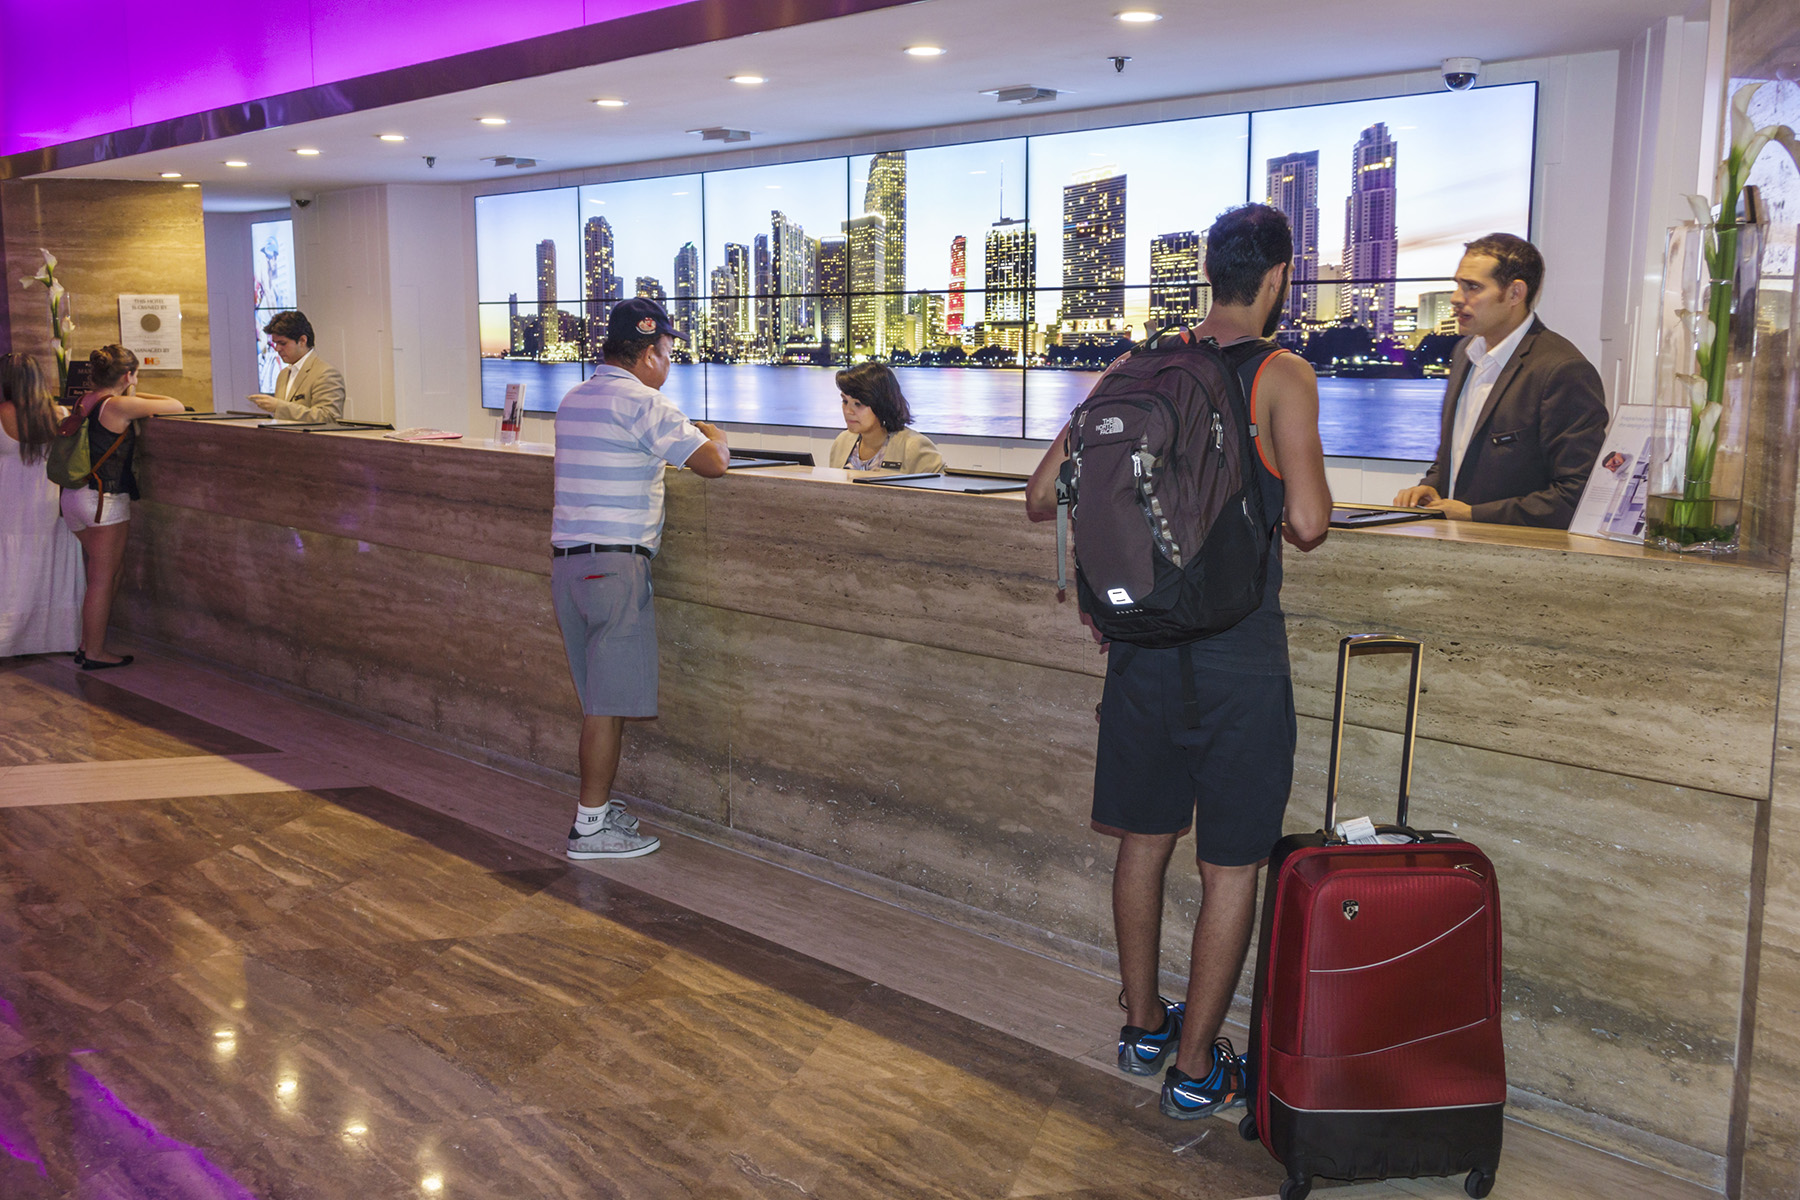 Leisure travelers are slowly filling hotel rooms again after anemic demand because of the coronavirus pandemic. (Getty Images)